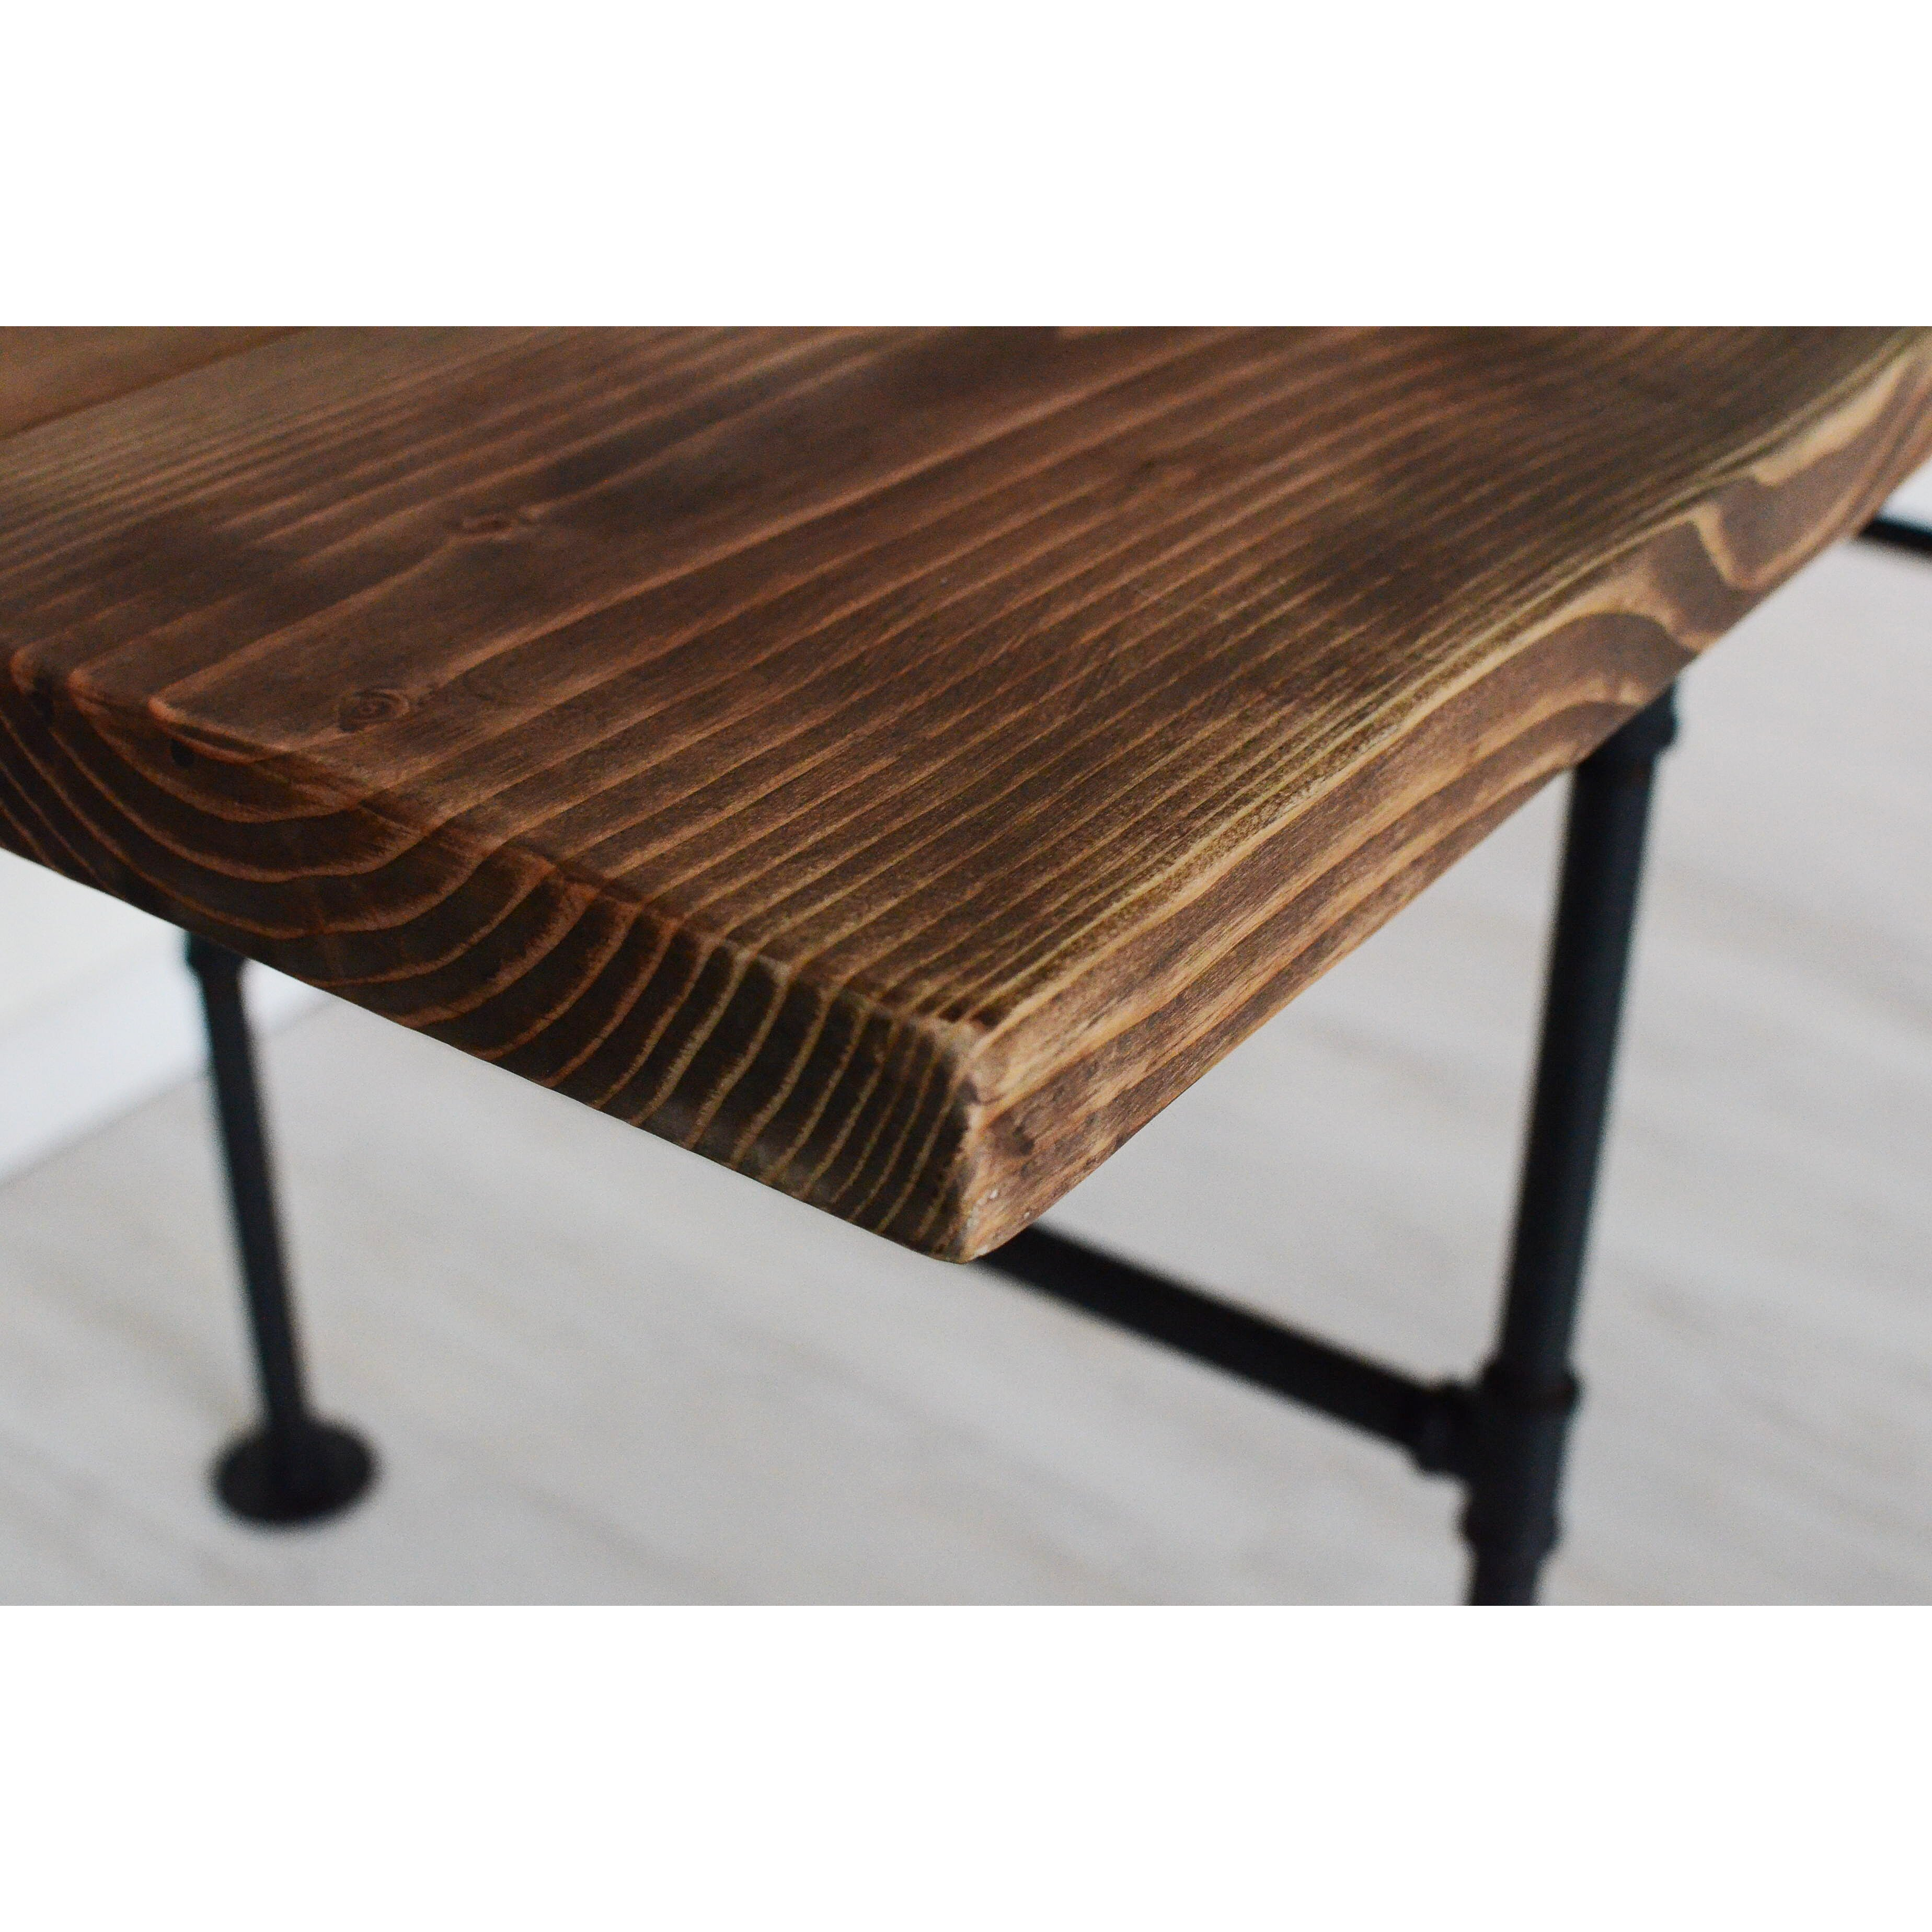 Brandtworksllc american iron pipe 6 foot dining table for Table 6 foot